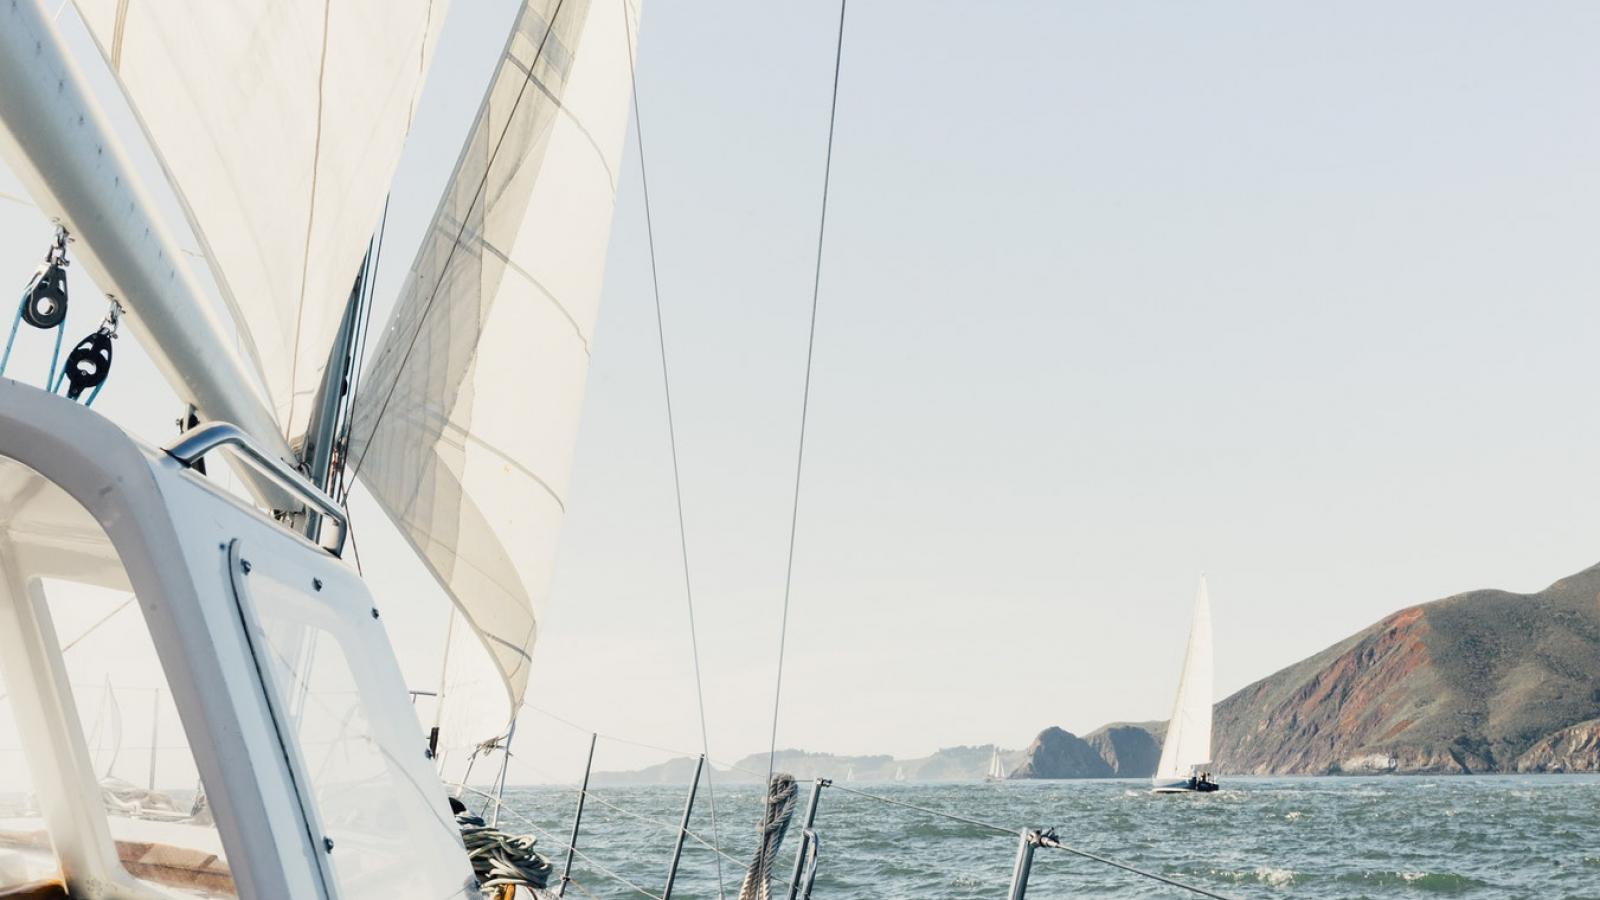 20th anniversary of the Voiles de Saint-Tropez regatta!